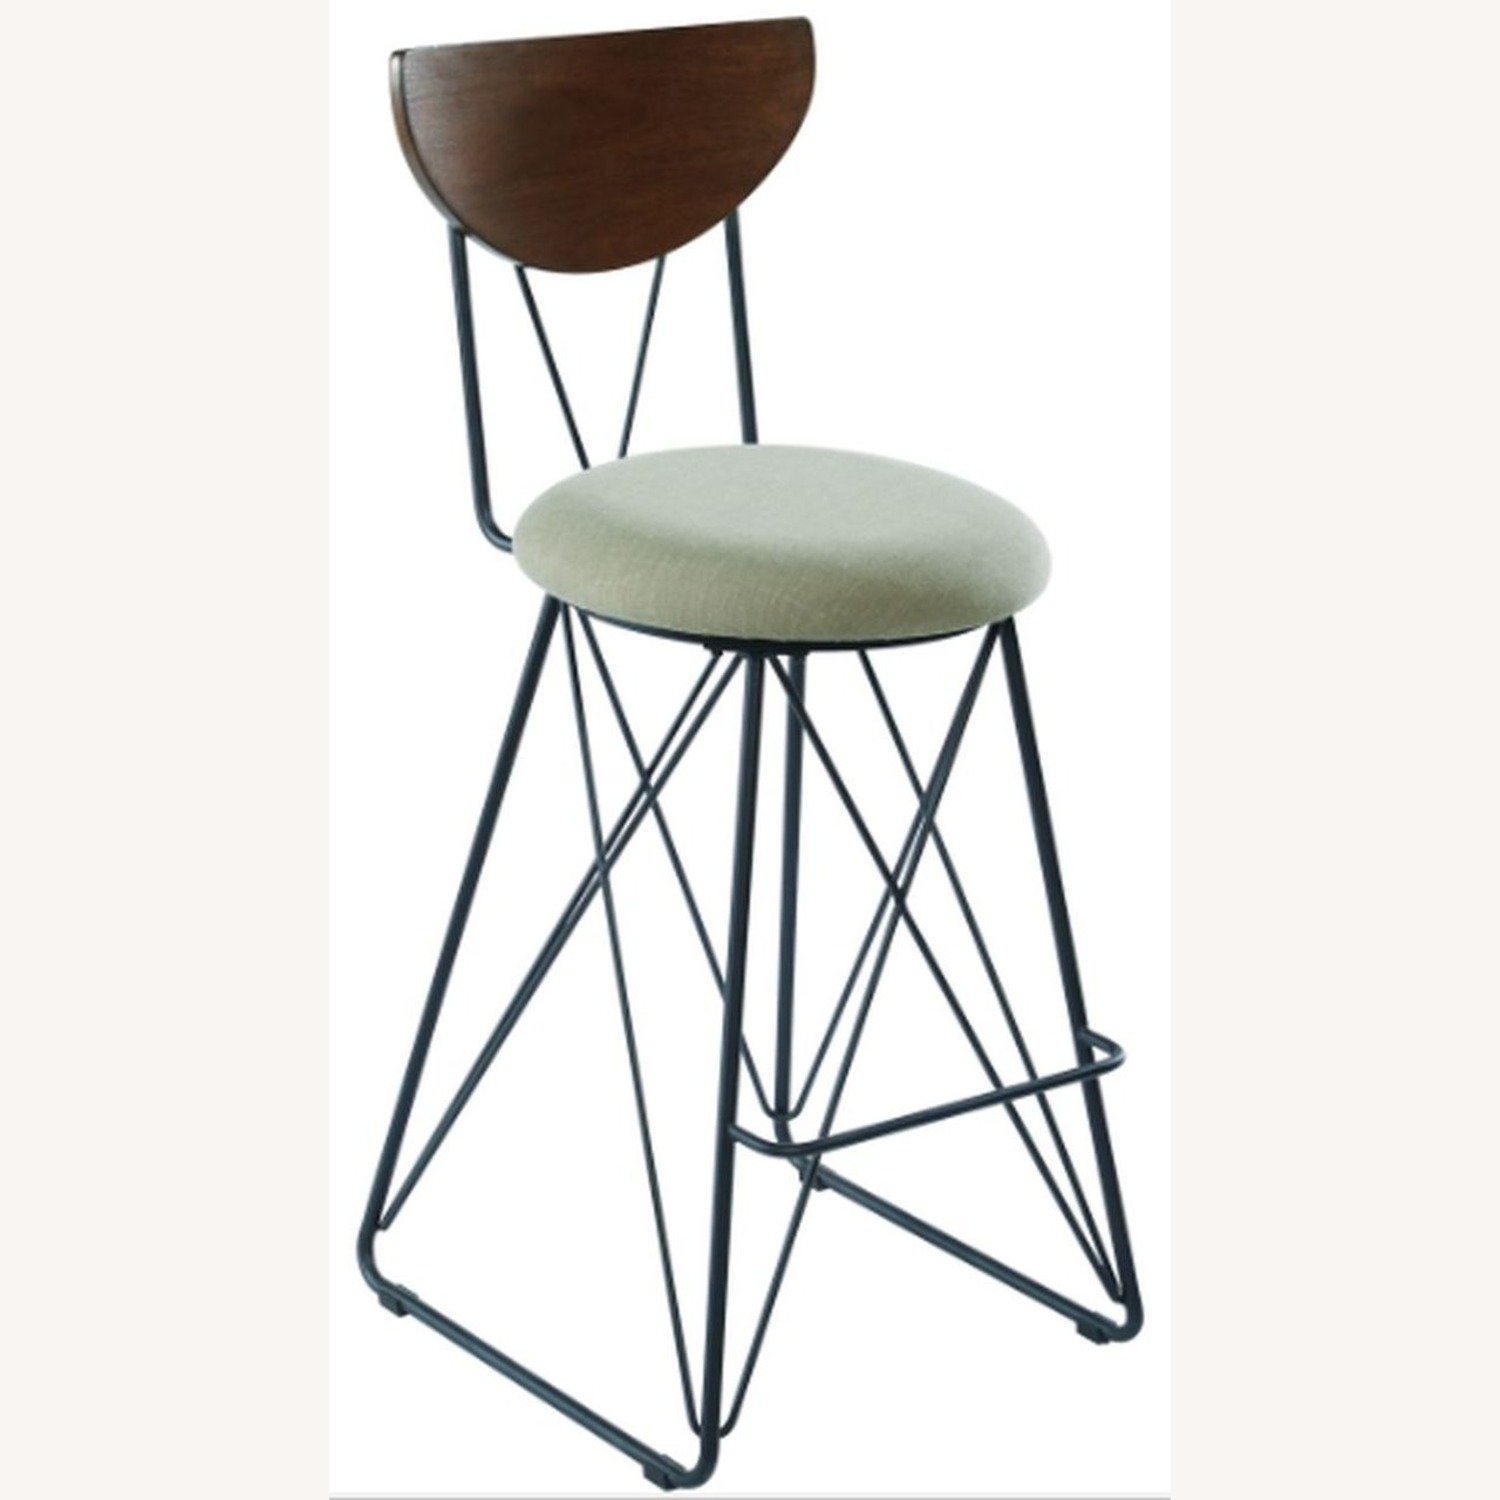 Modern Bar Stool In Linen-Like Green Fabric - image-0